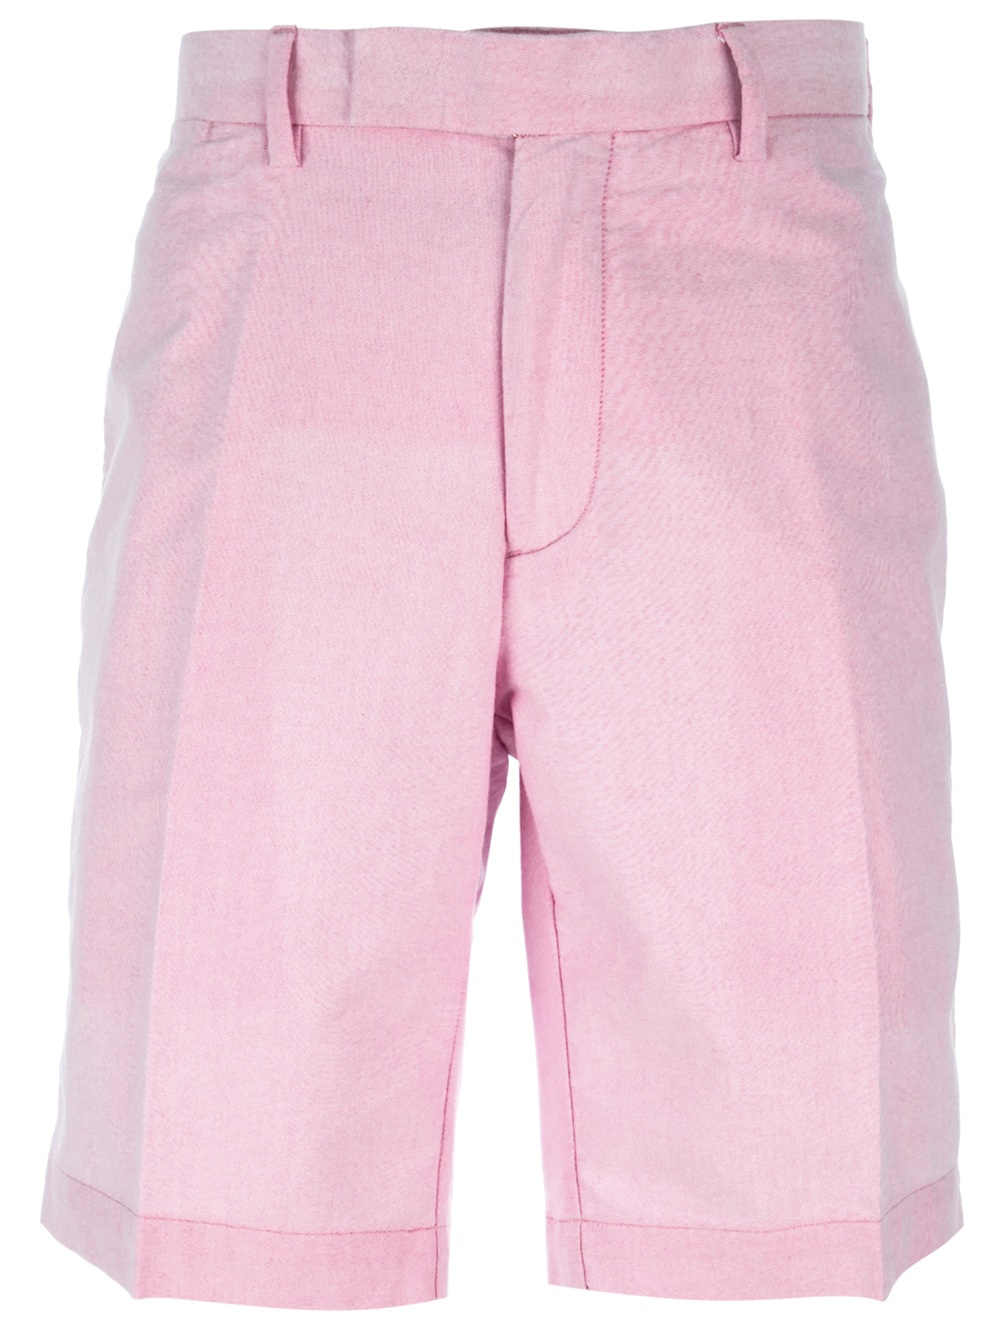 Polo Ralph Lauren Cotton Bermuda Shorts in Pink for Men - Lyst 98f6187d7f